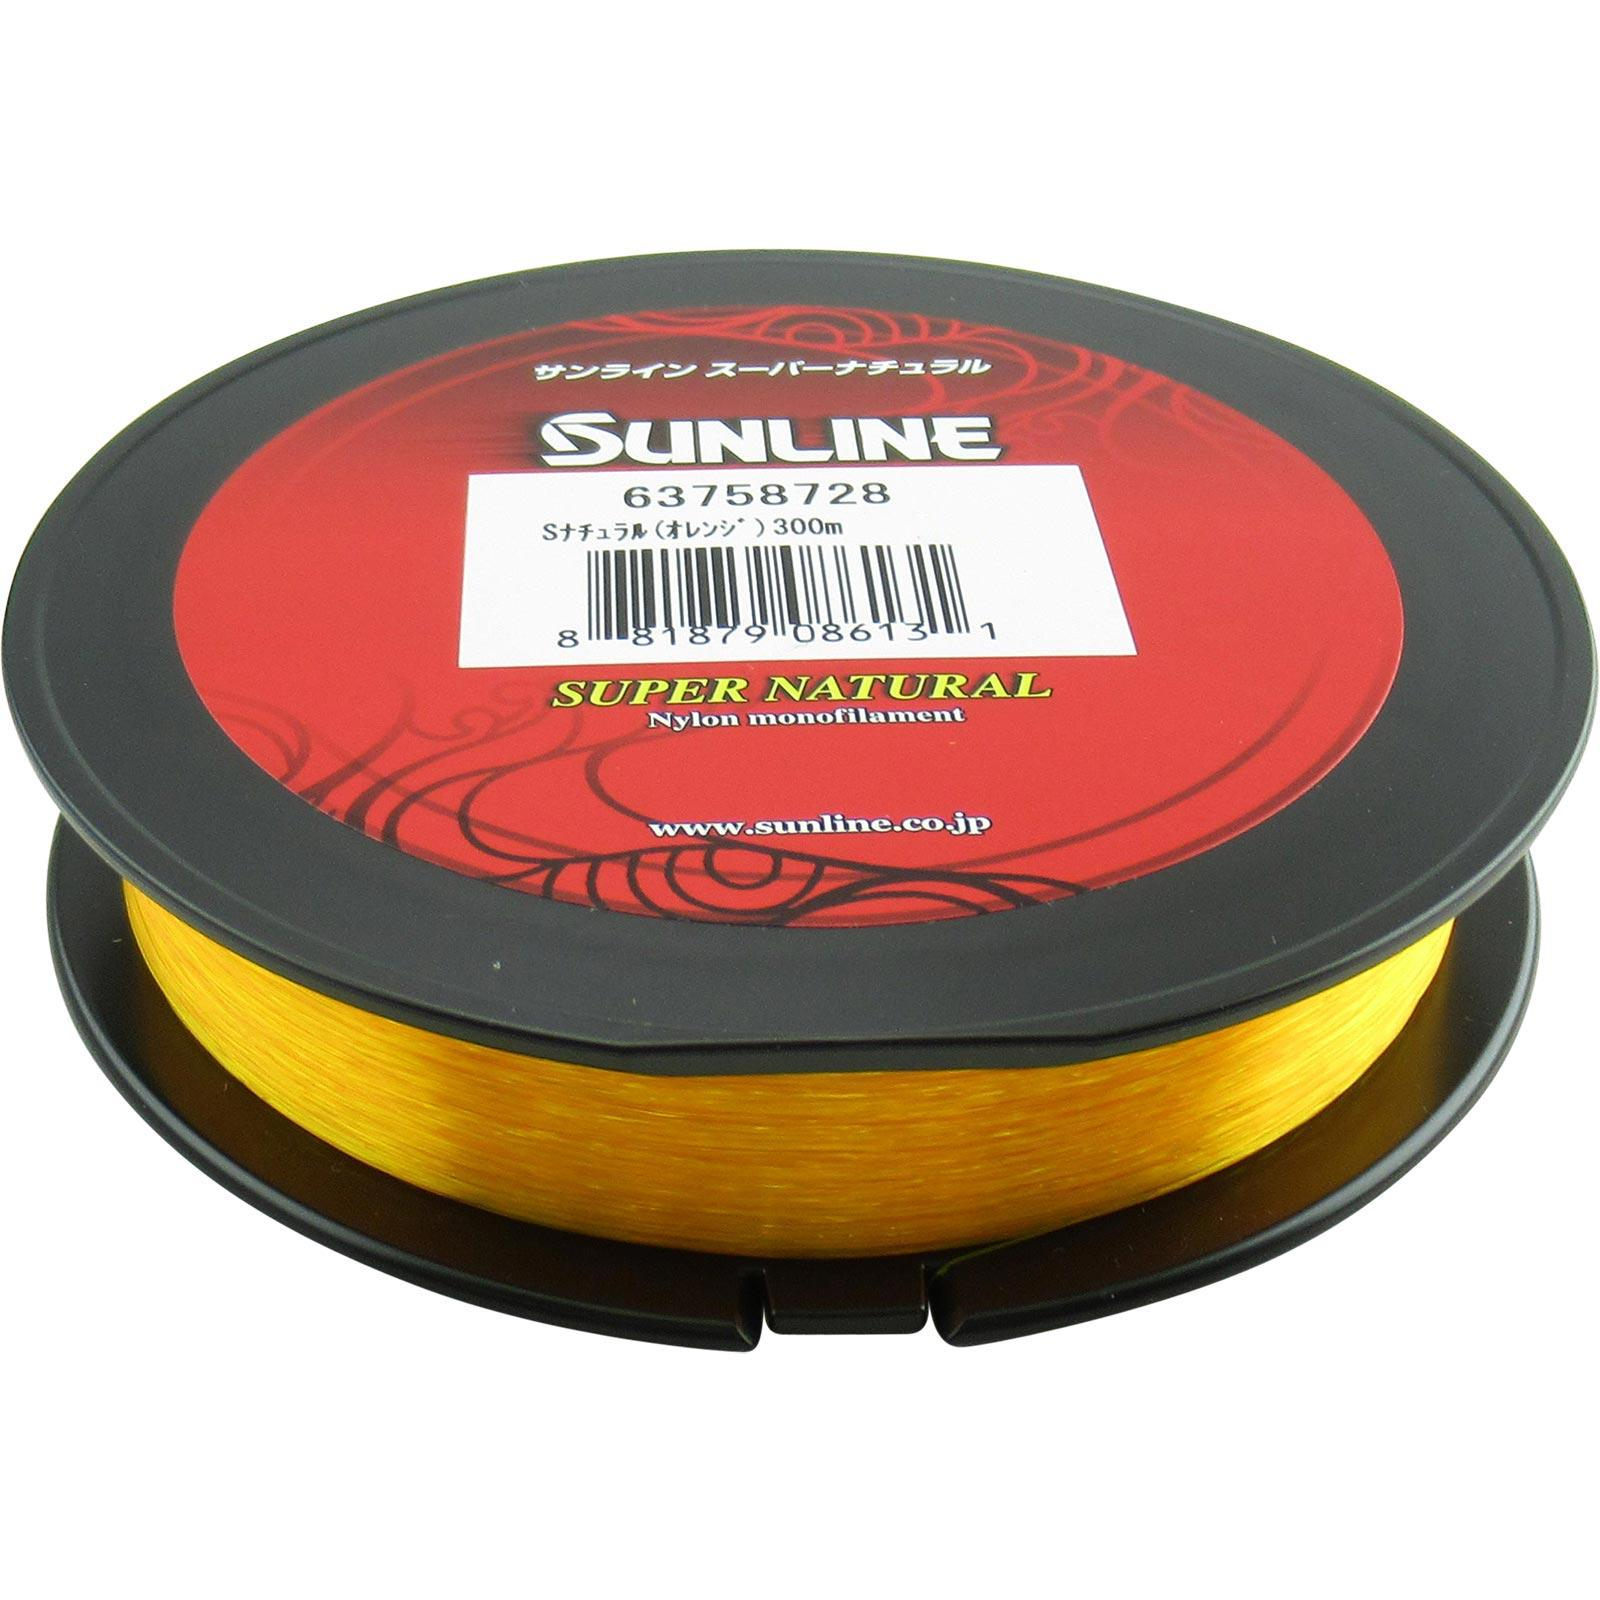 Super Natural Sunline Monofilament 330 YD Spool Fishing Line Any Color LB Test